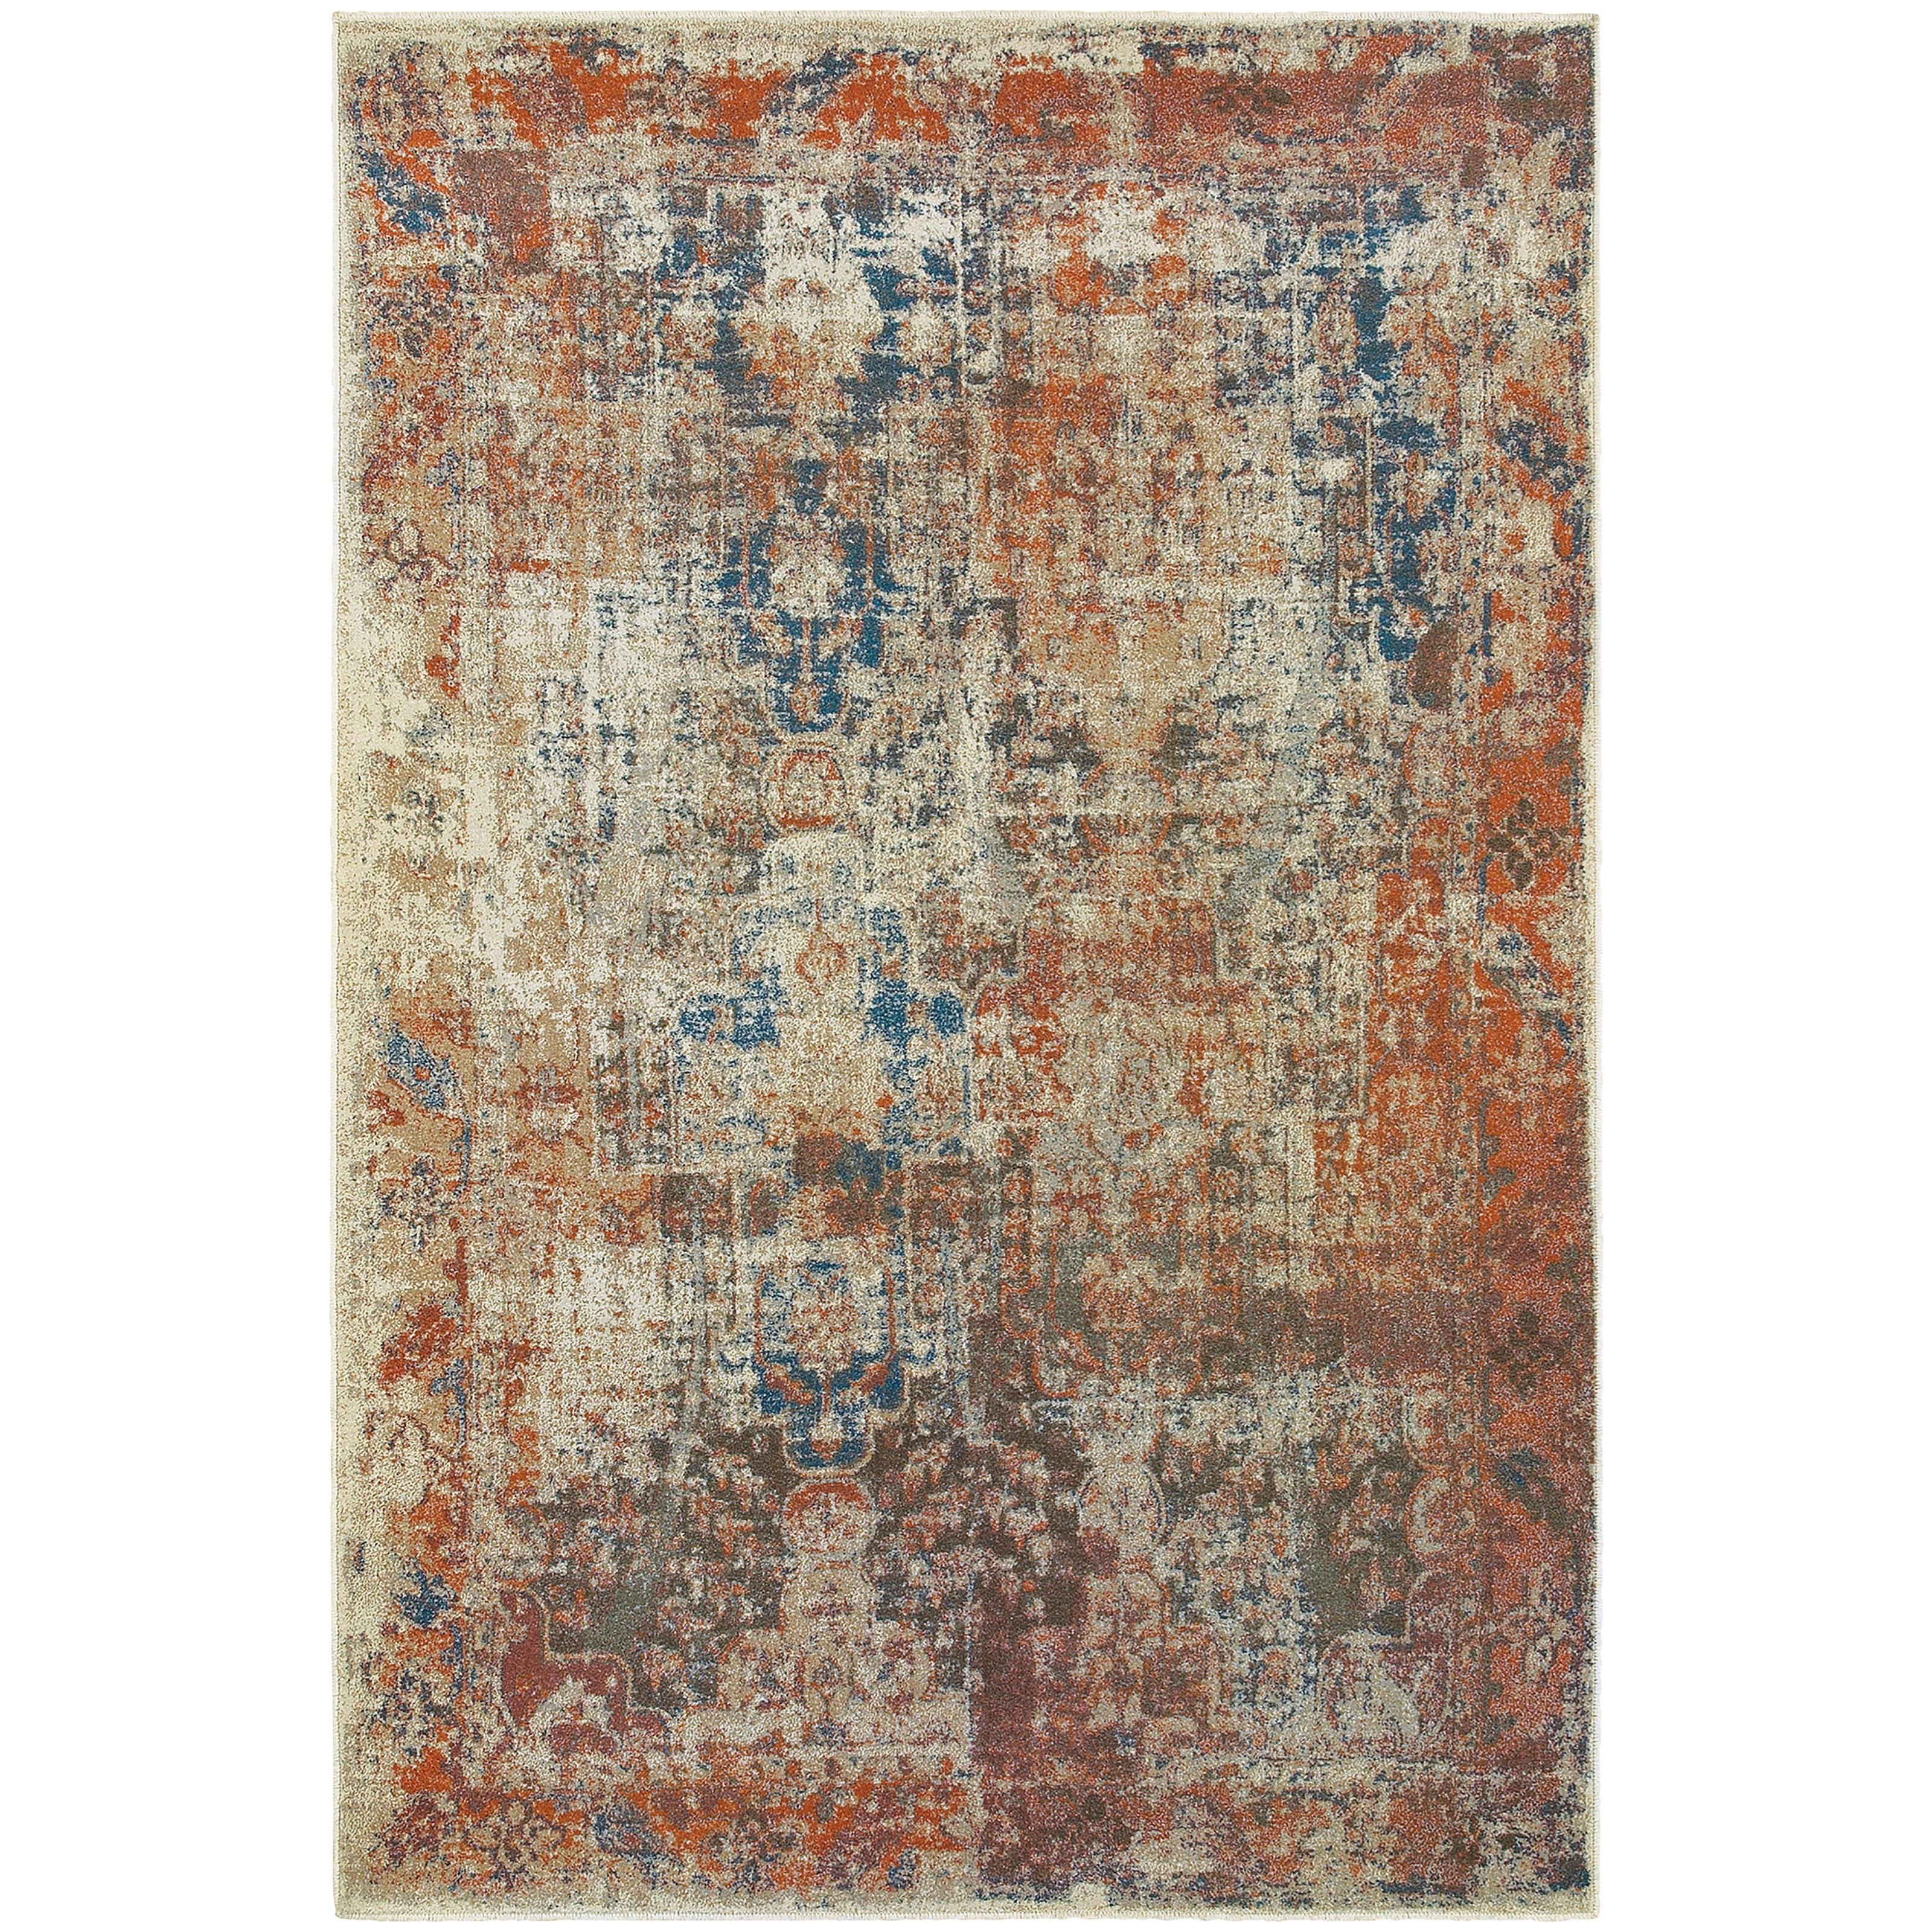 "Pasha 3'10"" X  5' 5"" Rectangle Area Rug by Oriental Weavers at Novello Home Furnishings"